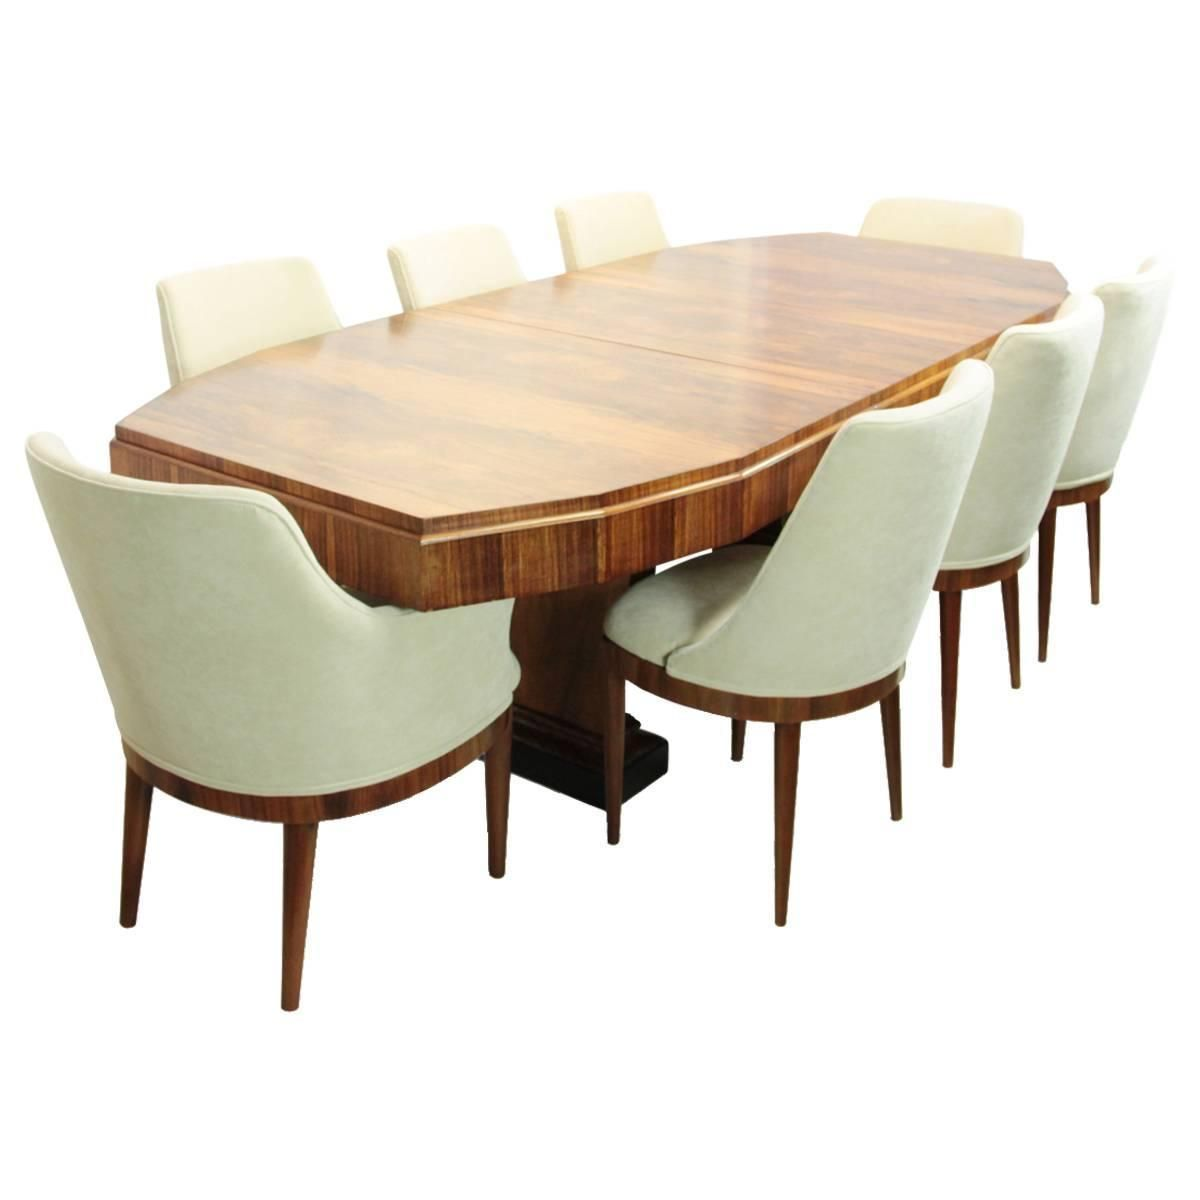 Art Deco Dining Table And Eight Chairs French Circa 1920 1stdibs Com Antique Dining Room Sets Dining Room Sets Art Deco Interior Design